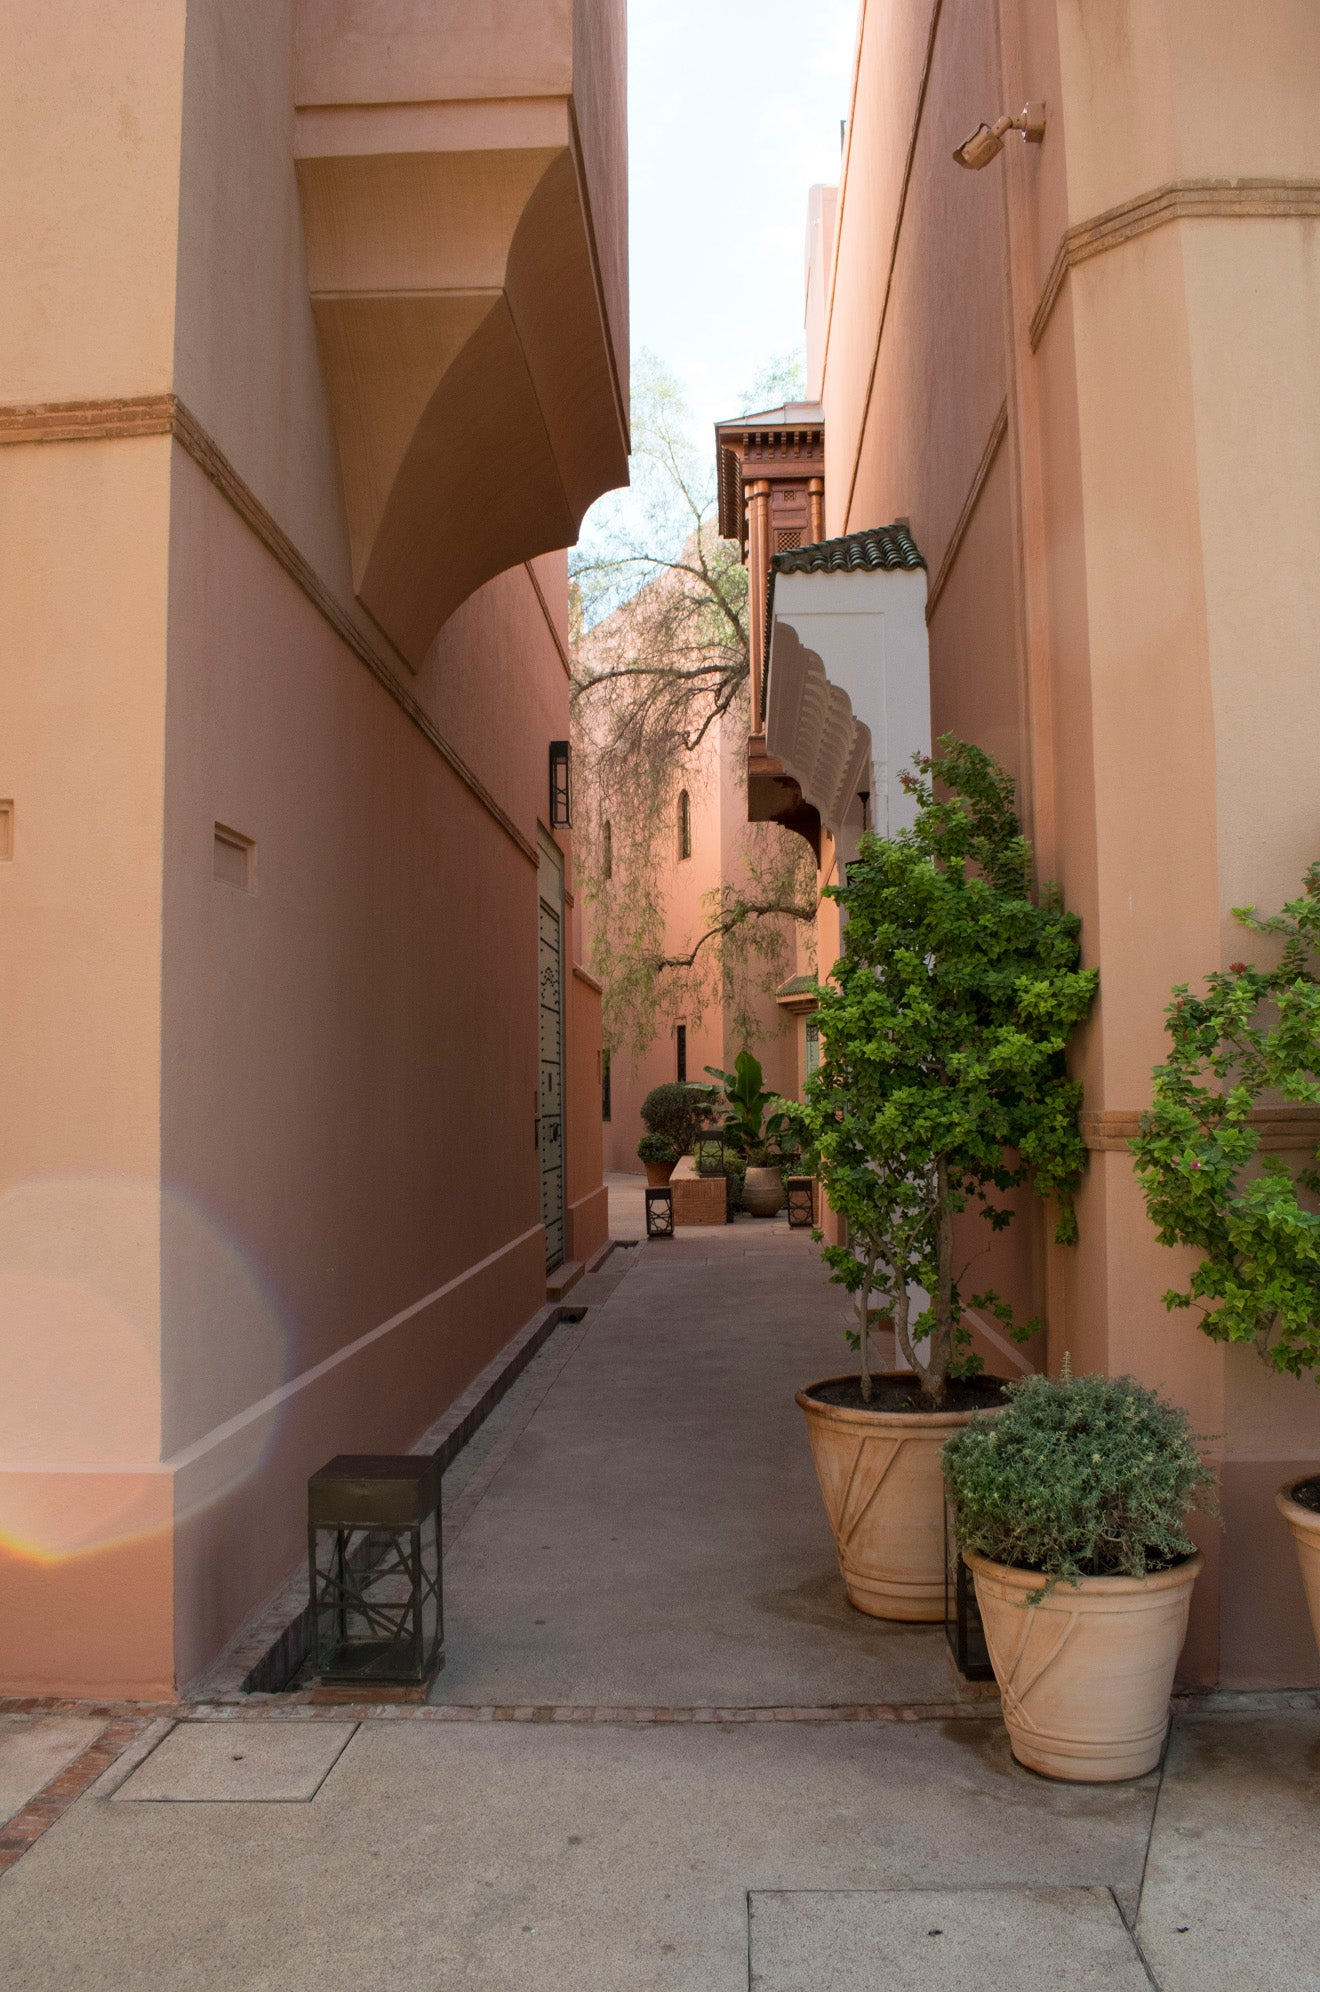 Winding streets of Riad hotels at the Royal Mansour, Marrakech